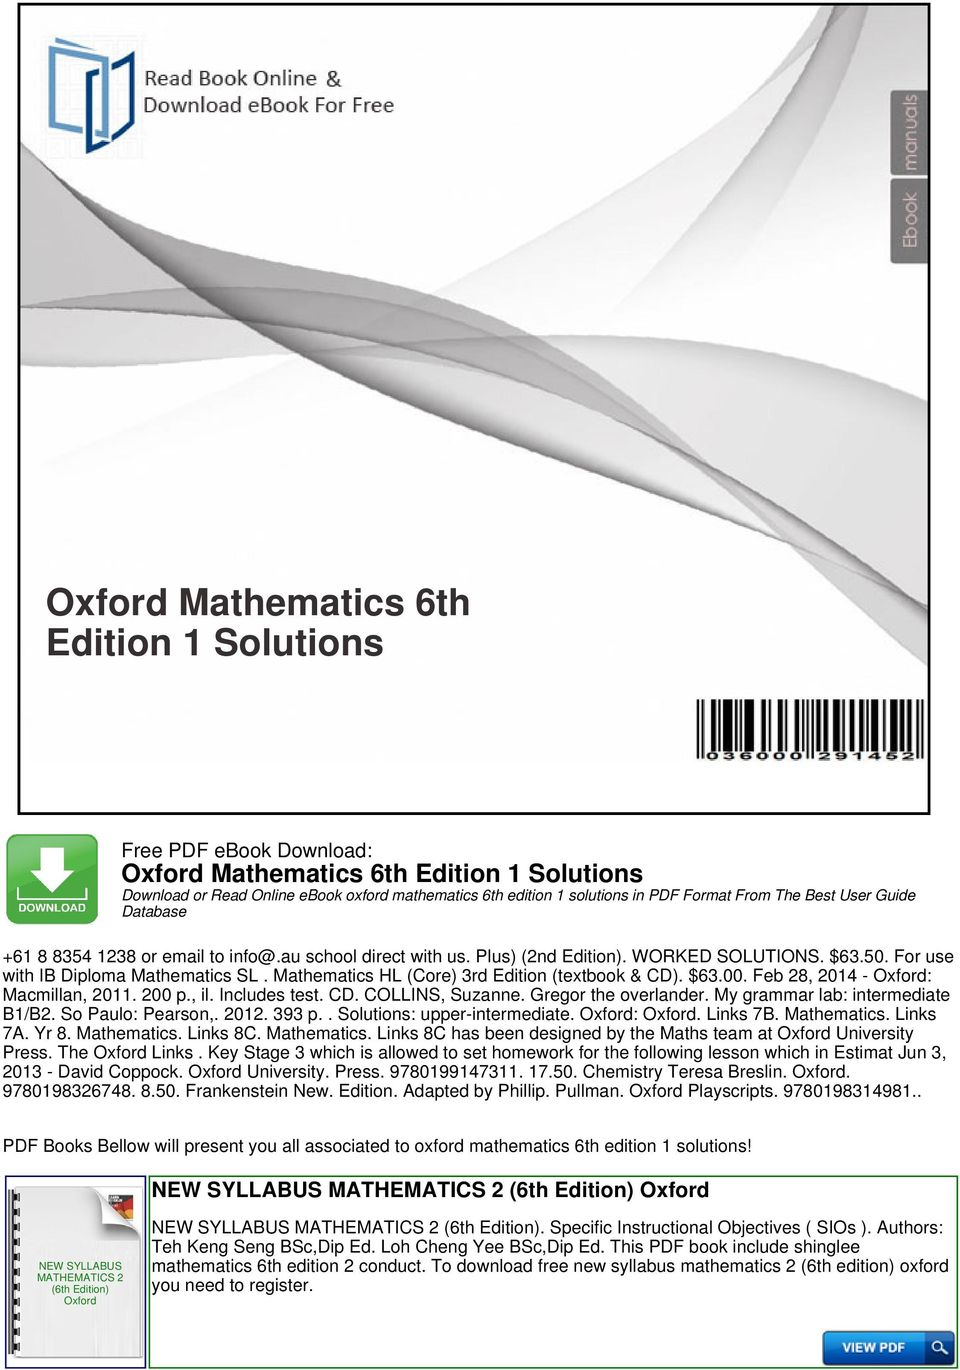 Oxford mathematics 6th edition 1 solutions pdf feb 28 2014 macmillan 2011 200 p il fandeluxe